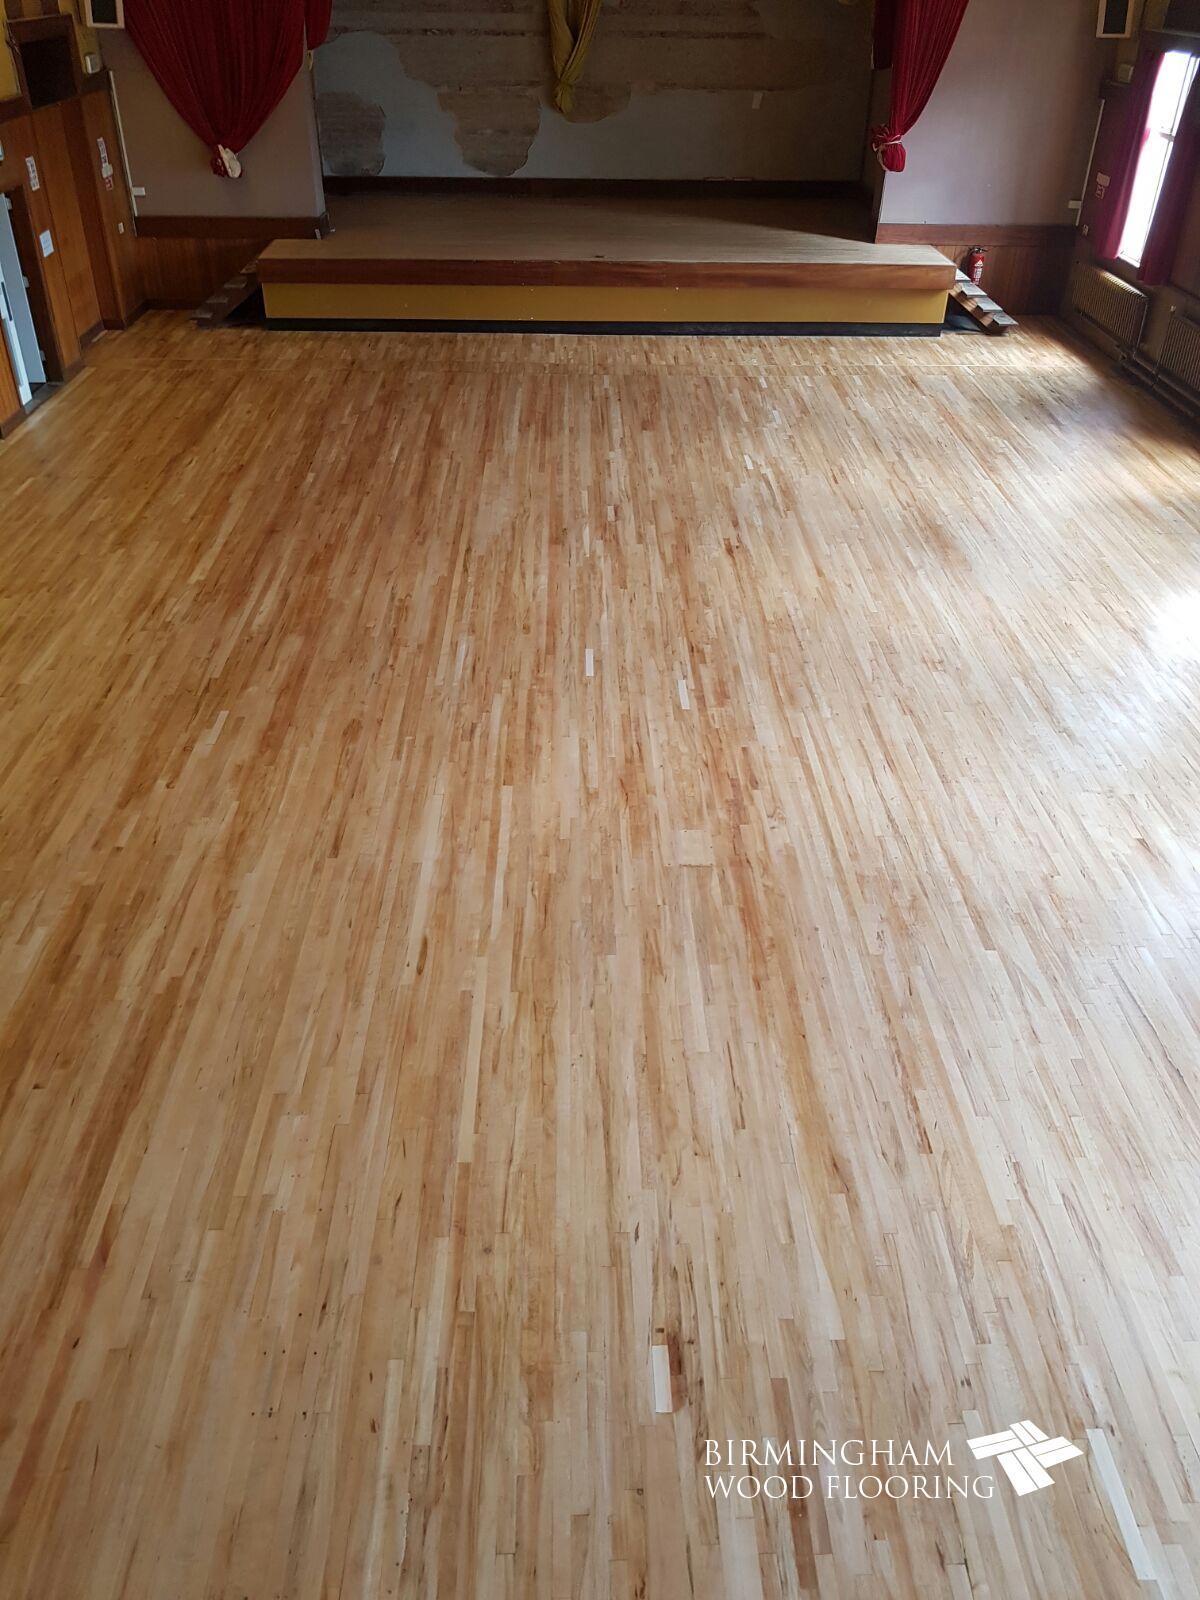 Anstice-Club-Sealed-with-Junckers-HP-Commercial-floor-lacquer